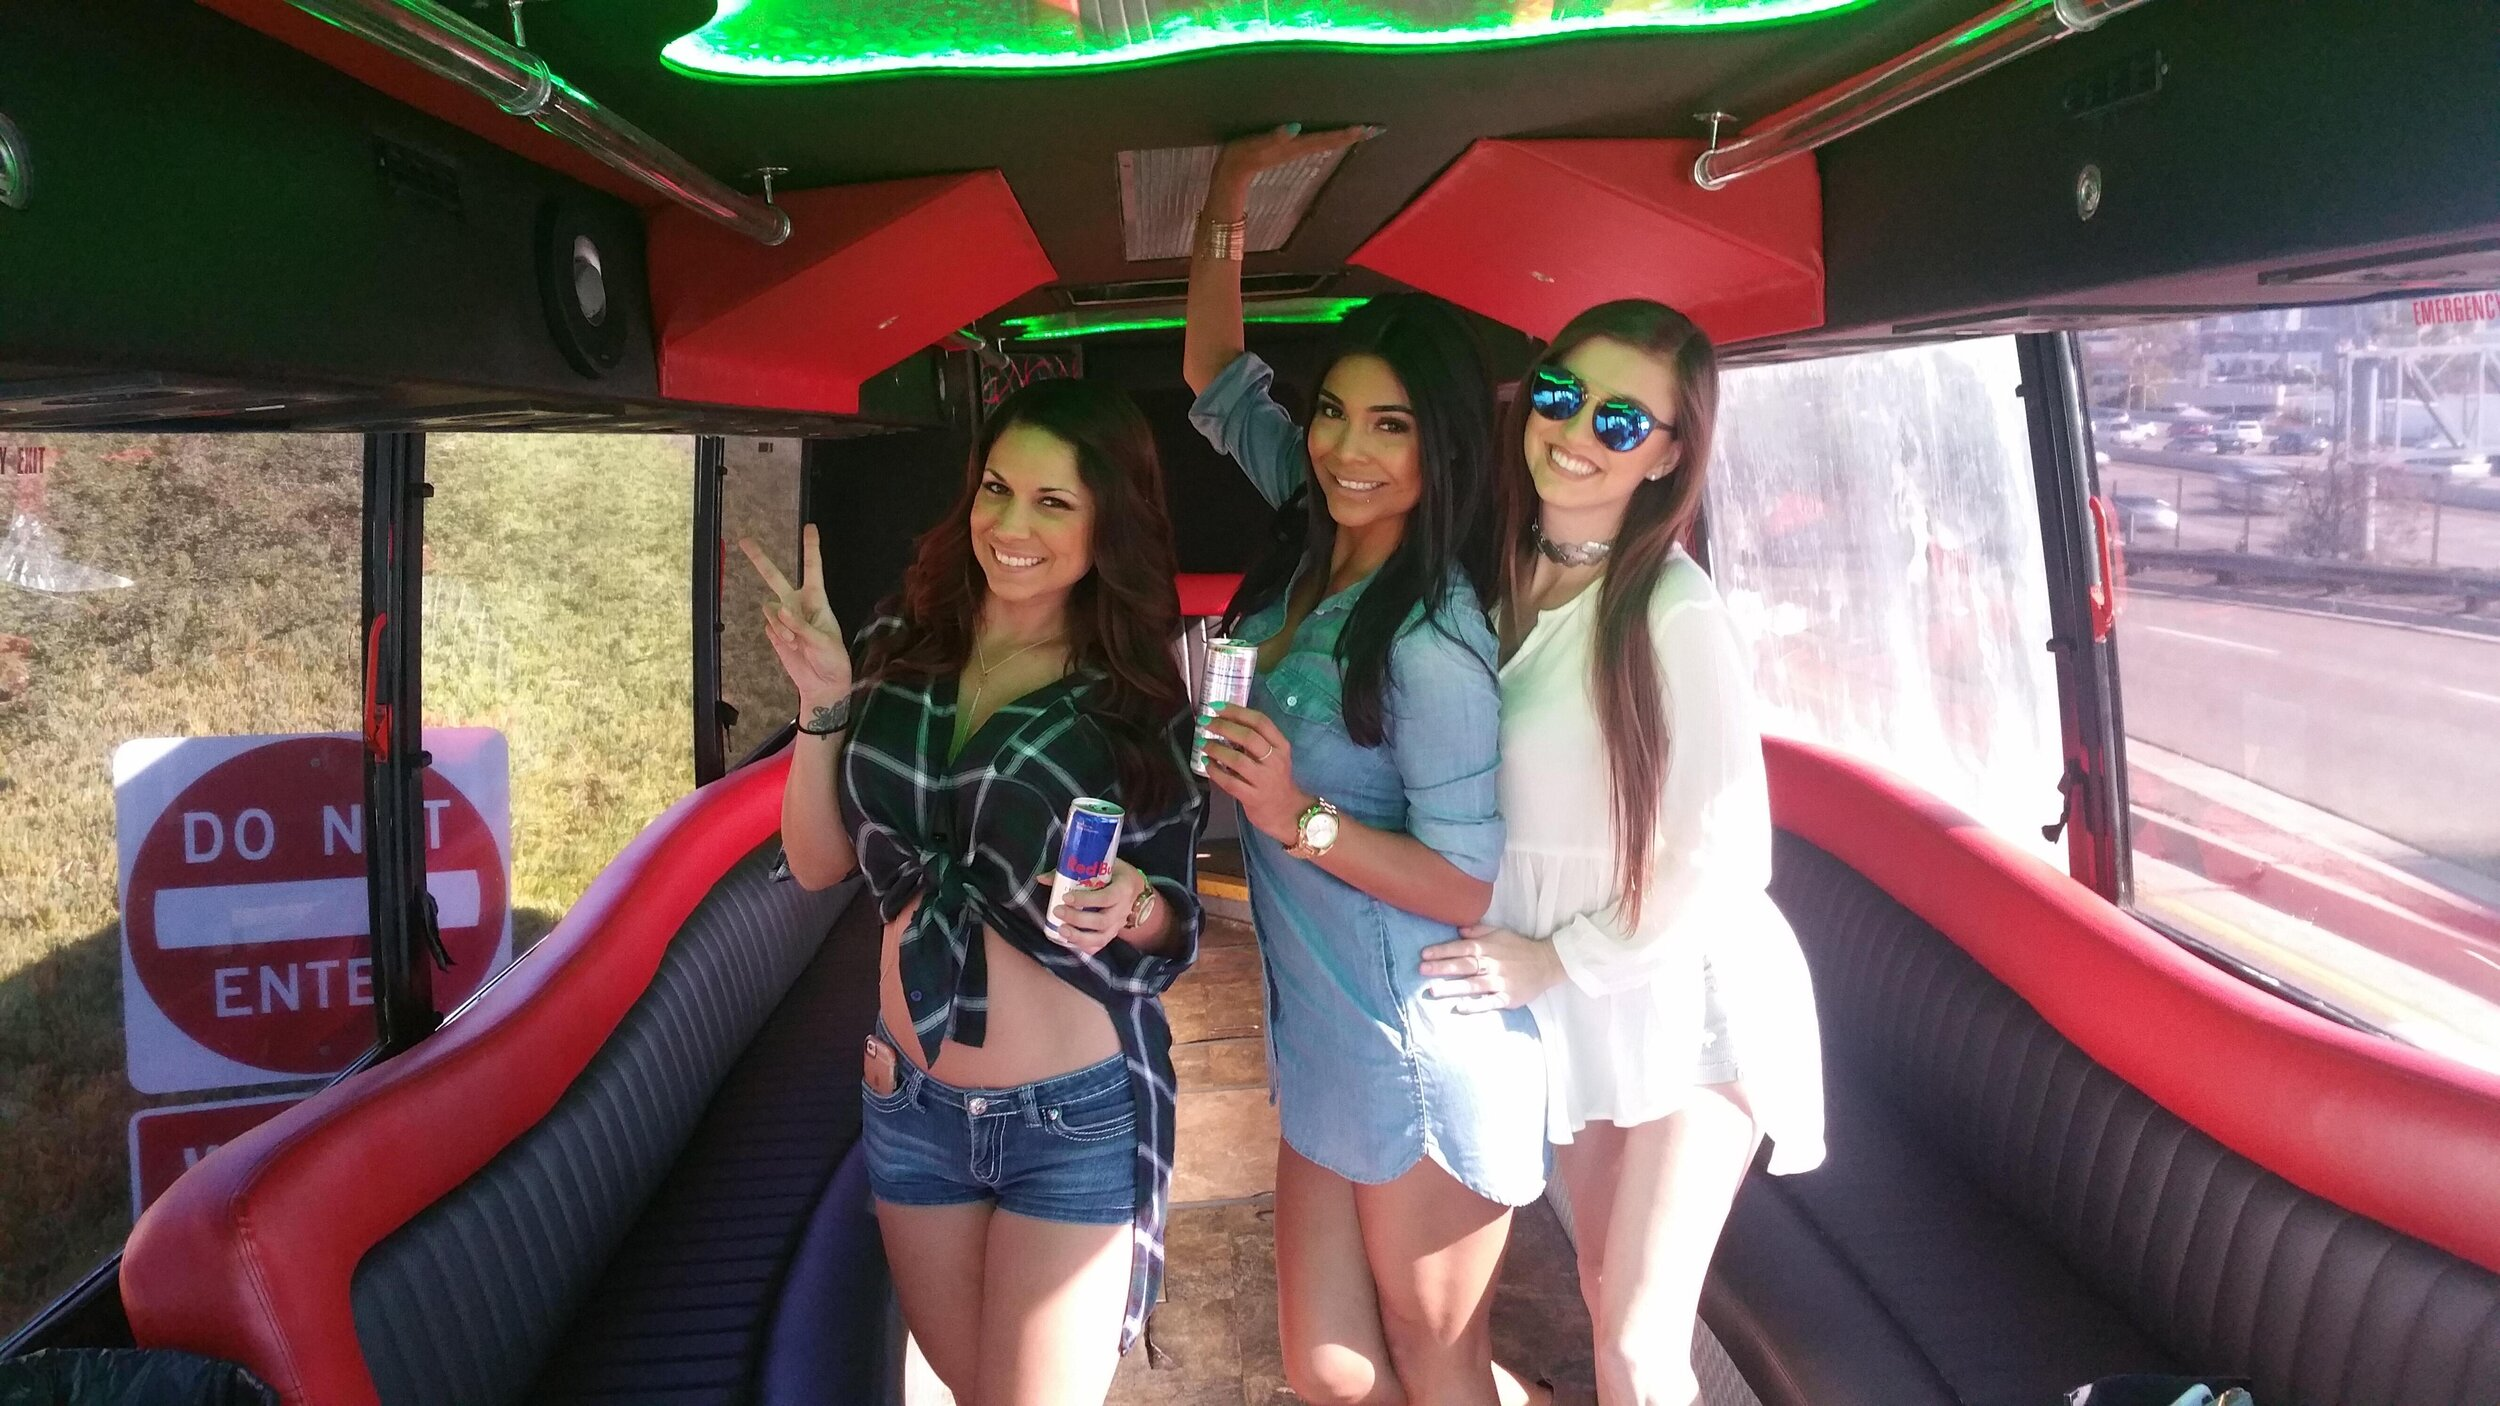 event-transportation-service-for-winery-tour-from-la-mesa-interior-picture.jpg